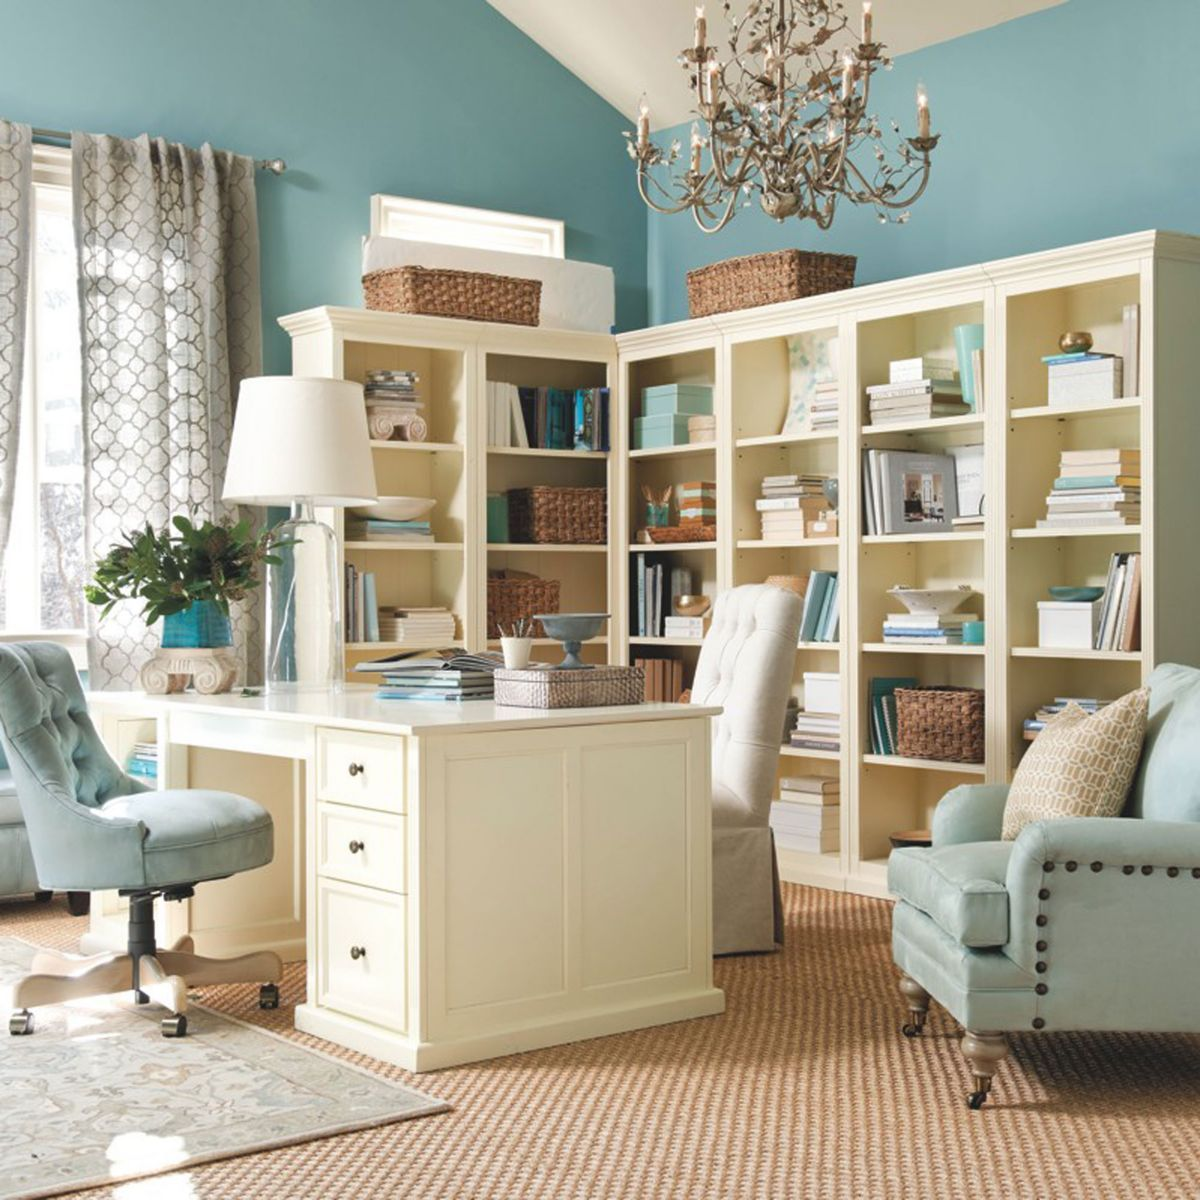 Study Room Color Ideas: Here Is A Cabinet For An Office Like Study Room In Your